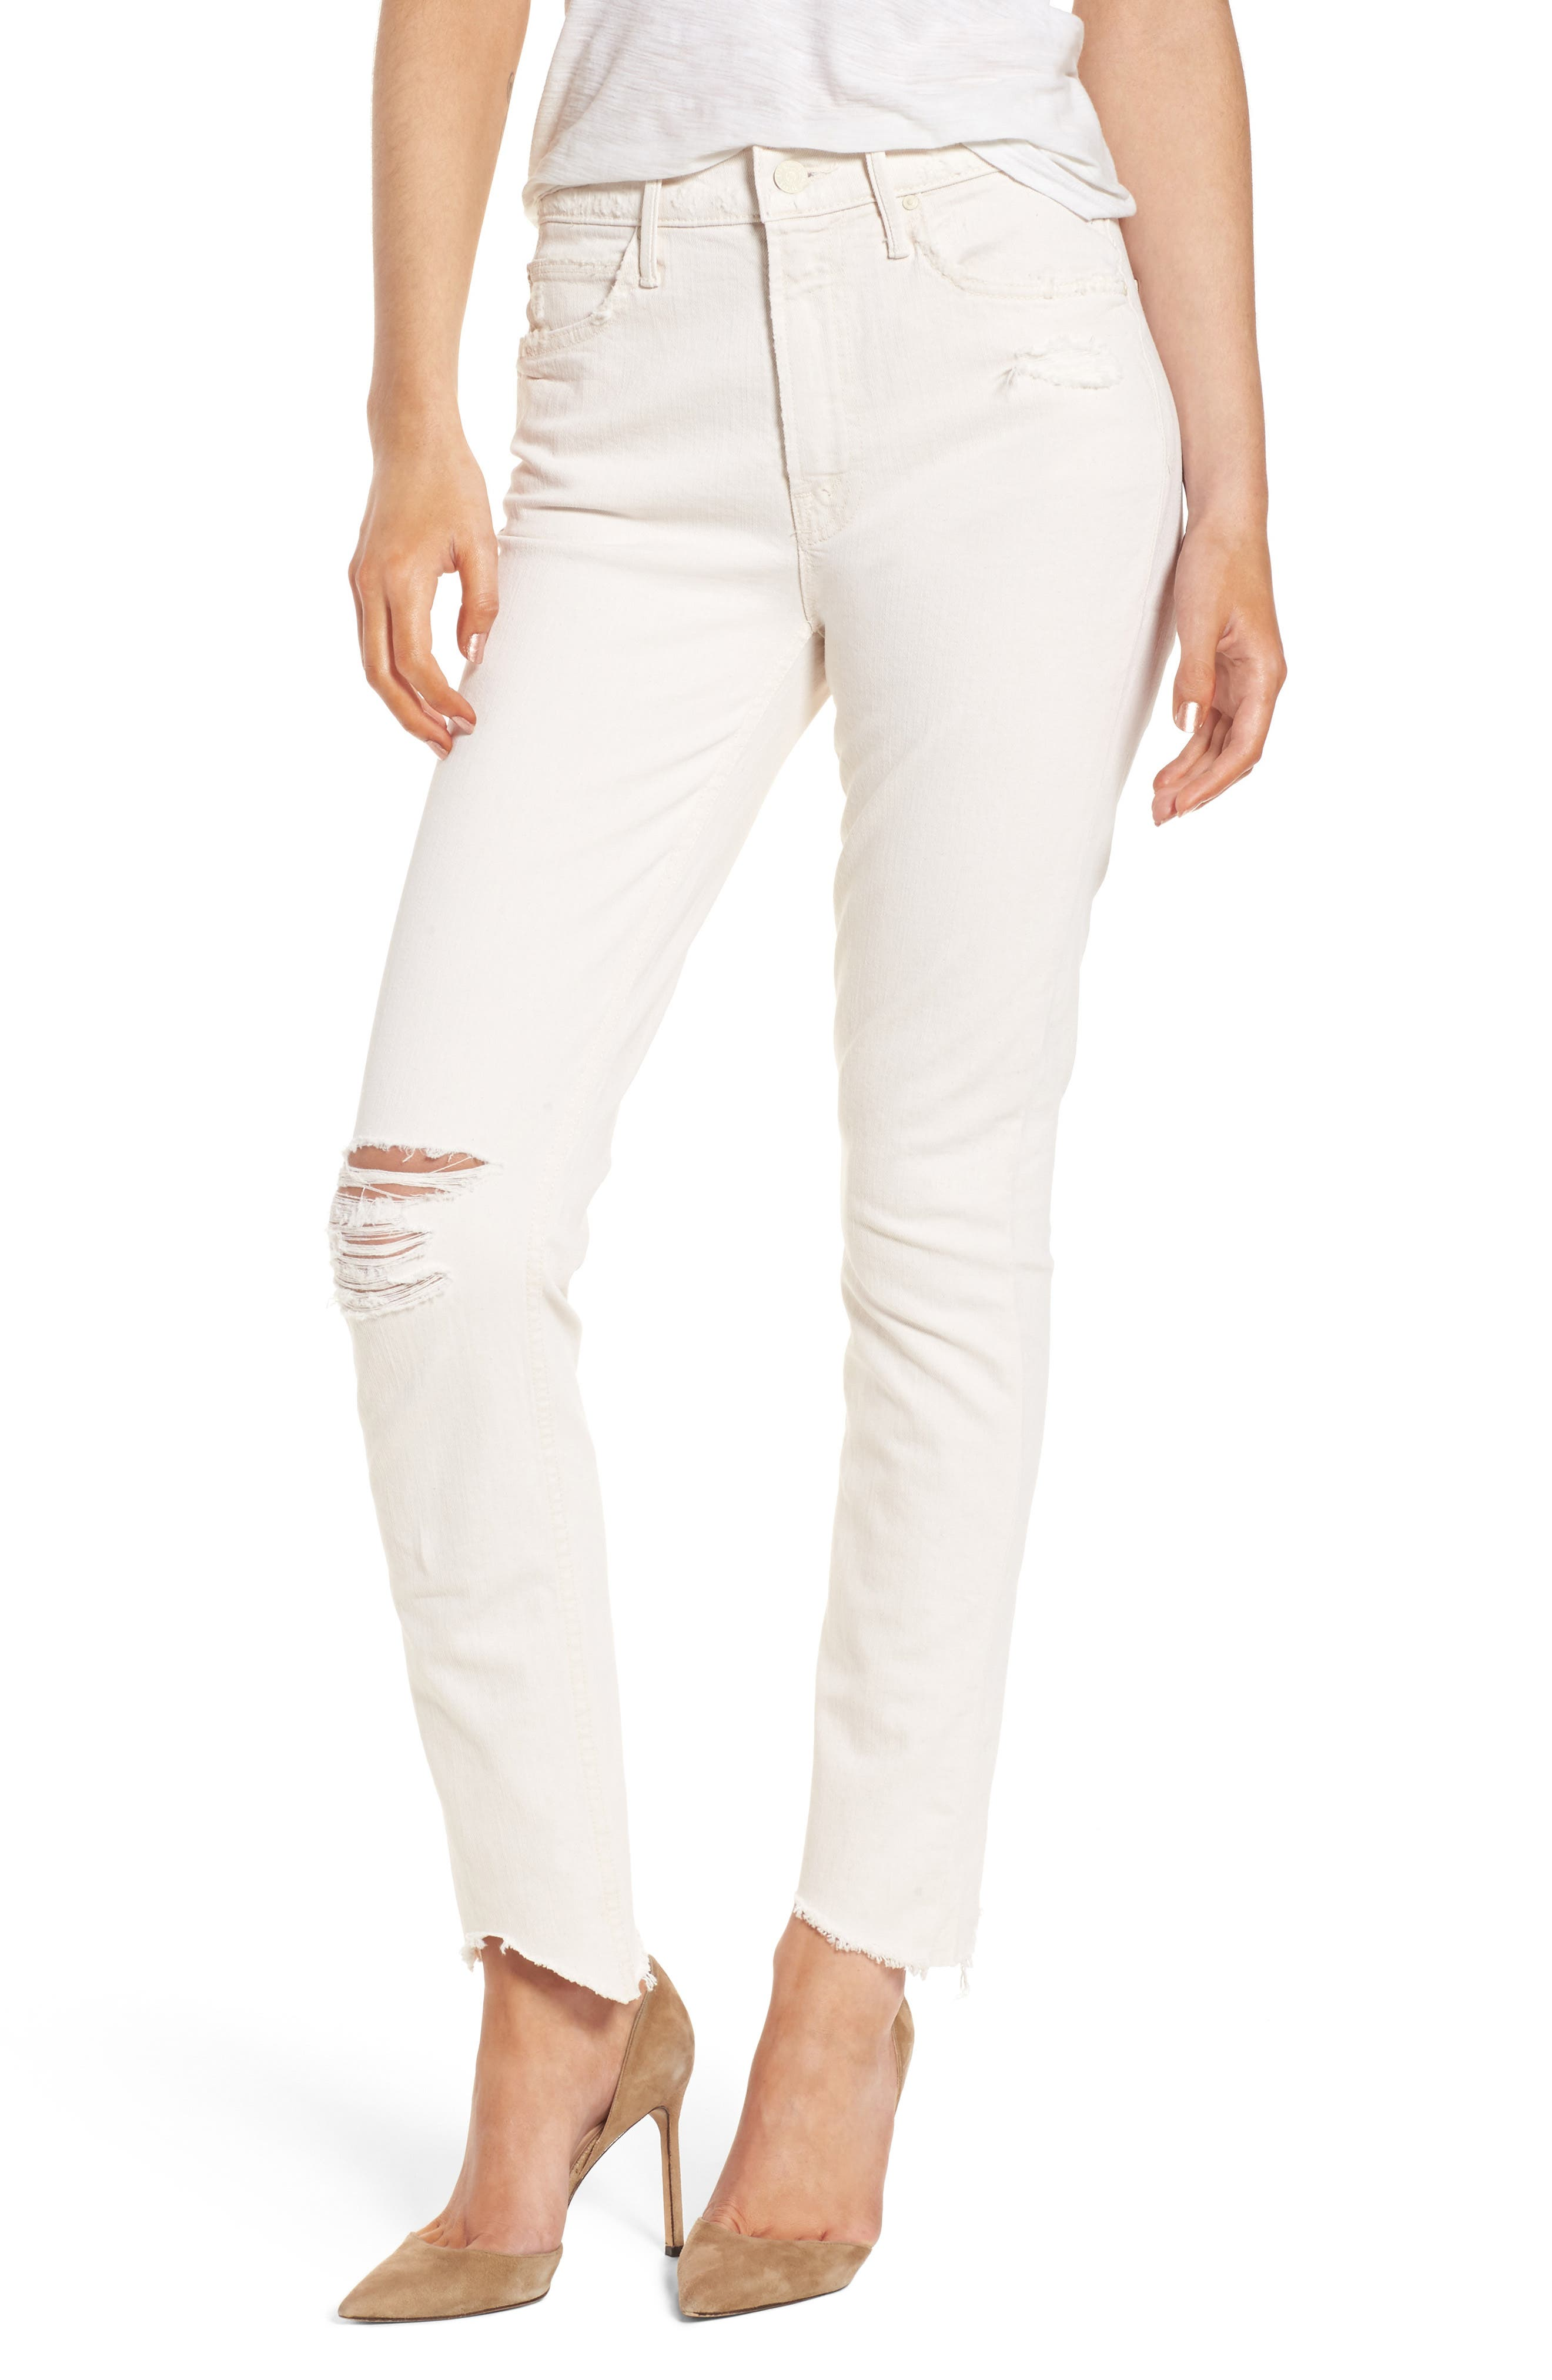 Alternate Image 1 Selected - MOTHER The Flirt Chew Ankle Straight Leg Jeans (Unnatural Acts)